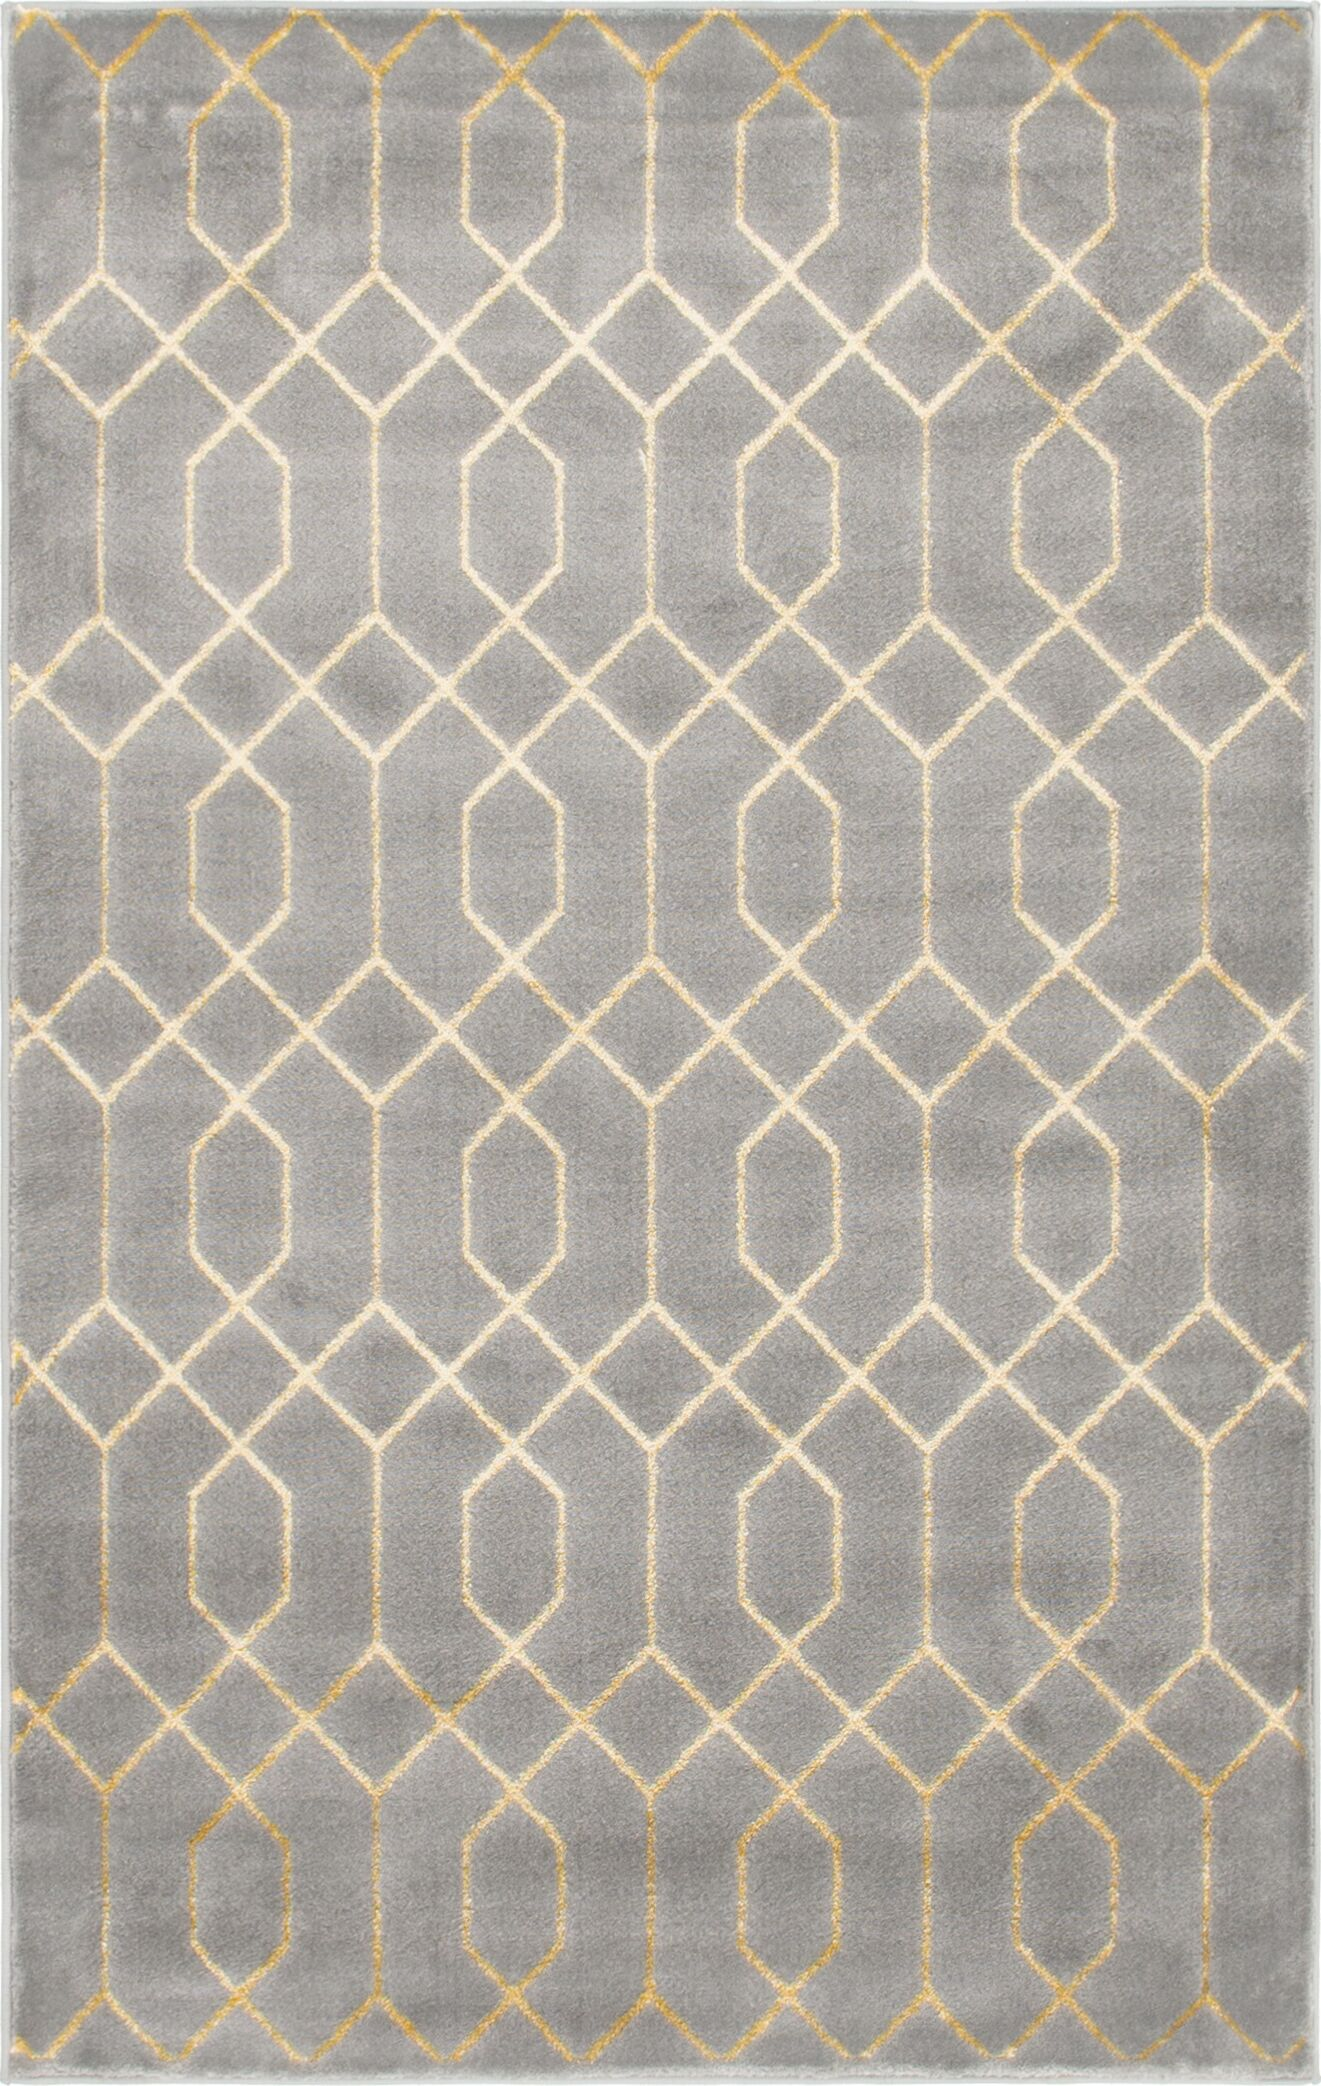 Glam Gray Area Rug Rug Size: Rectangle 4' x 6'